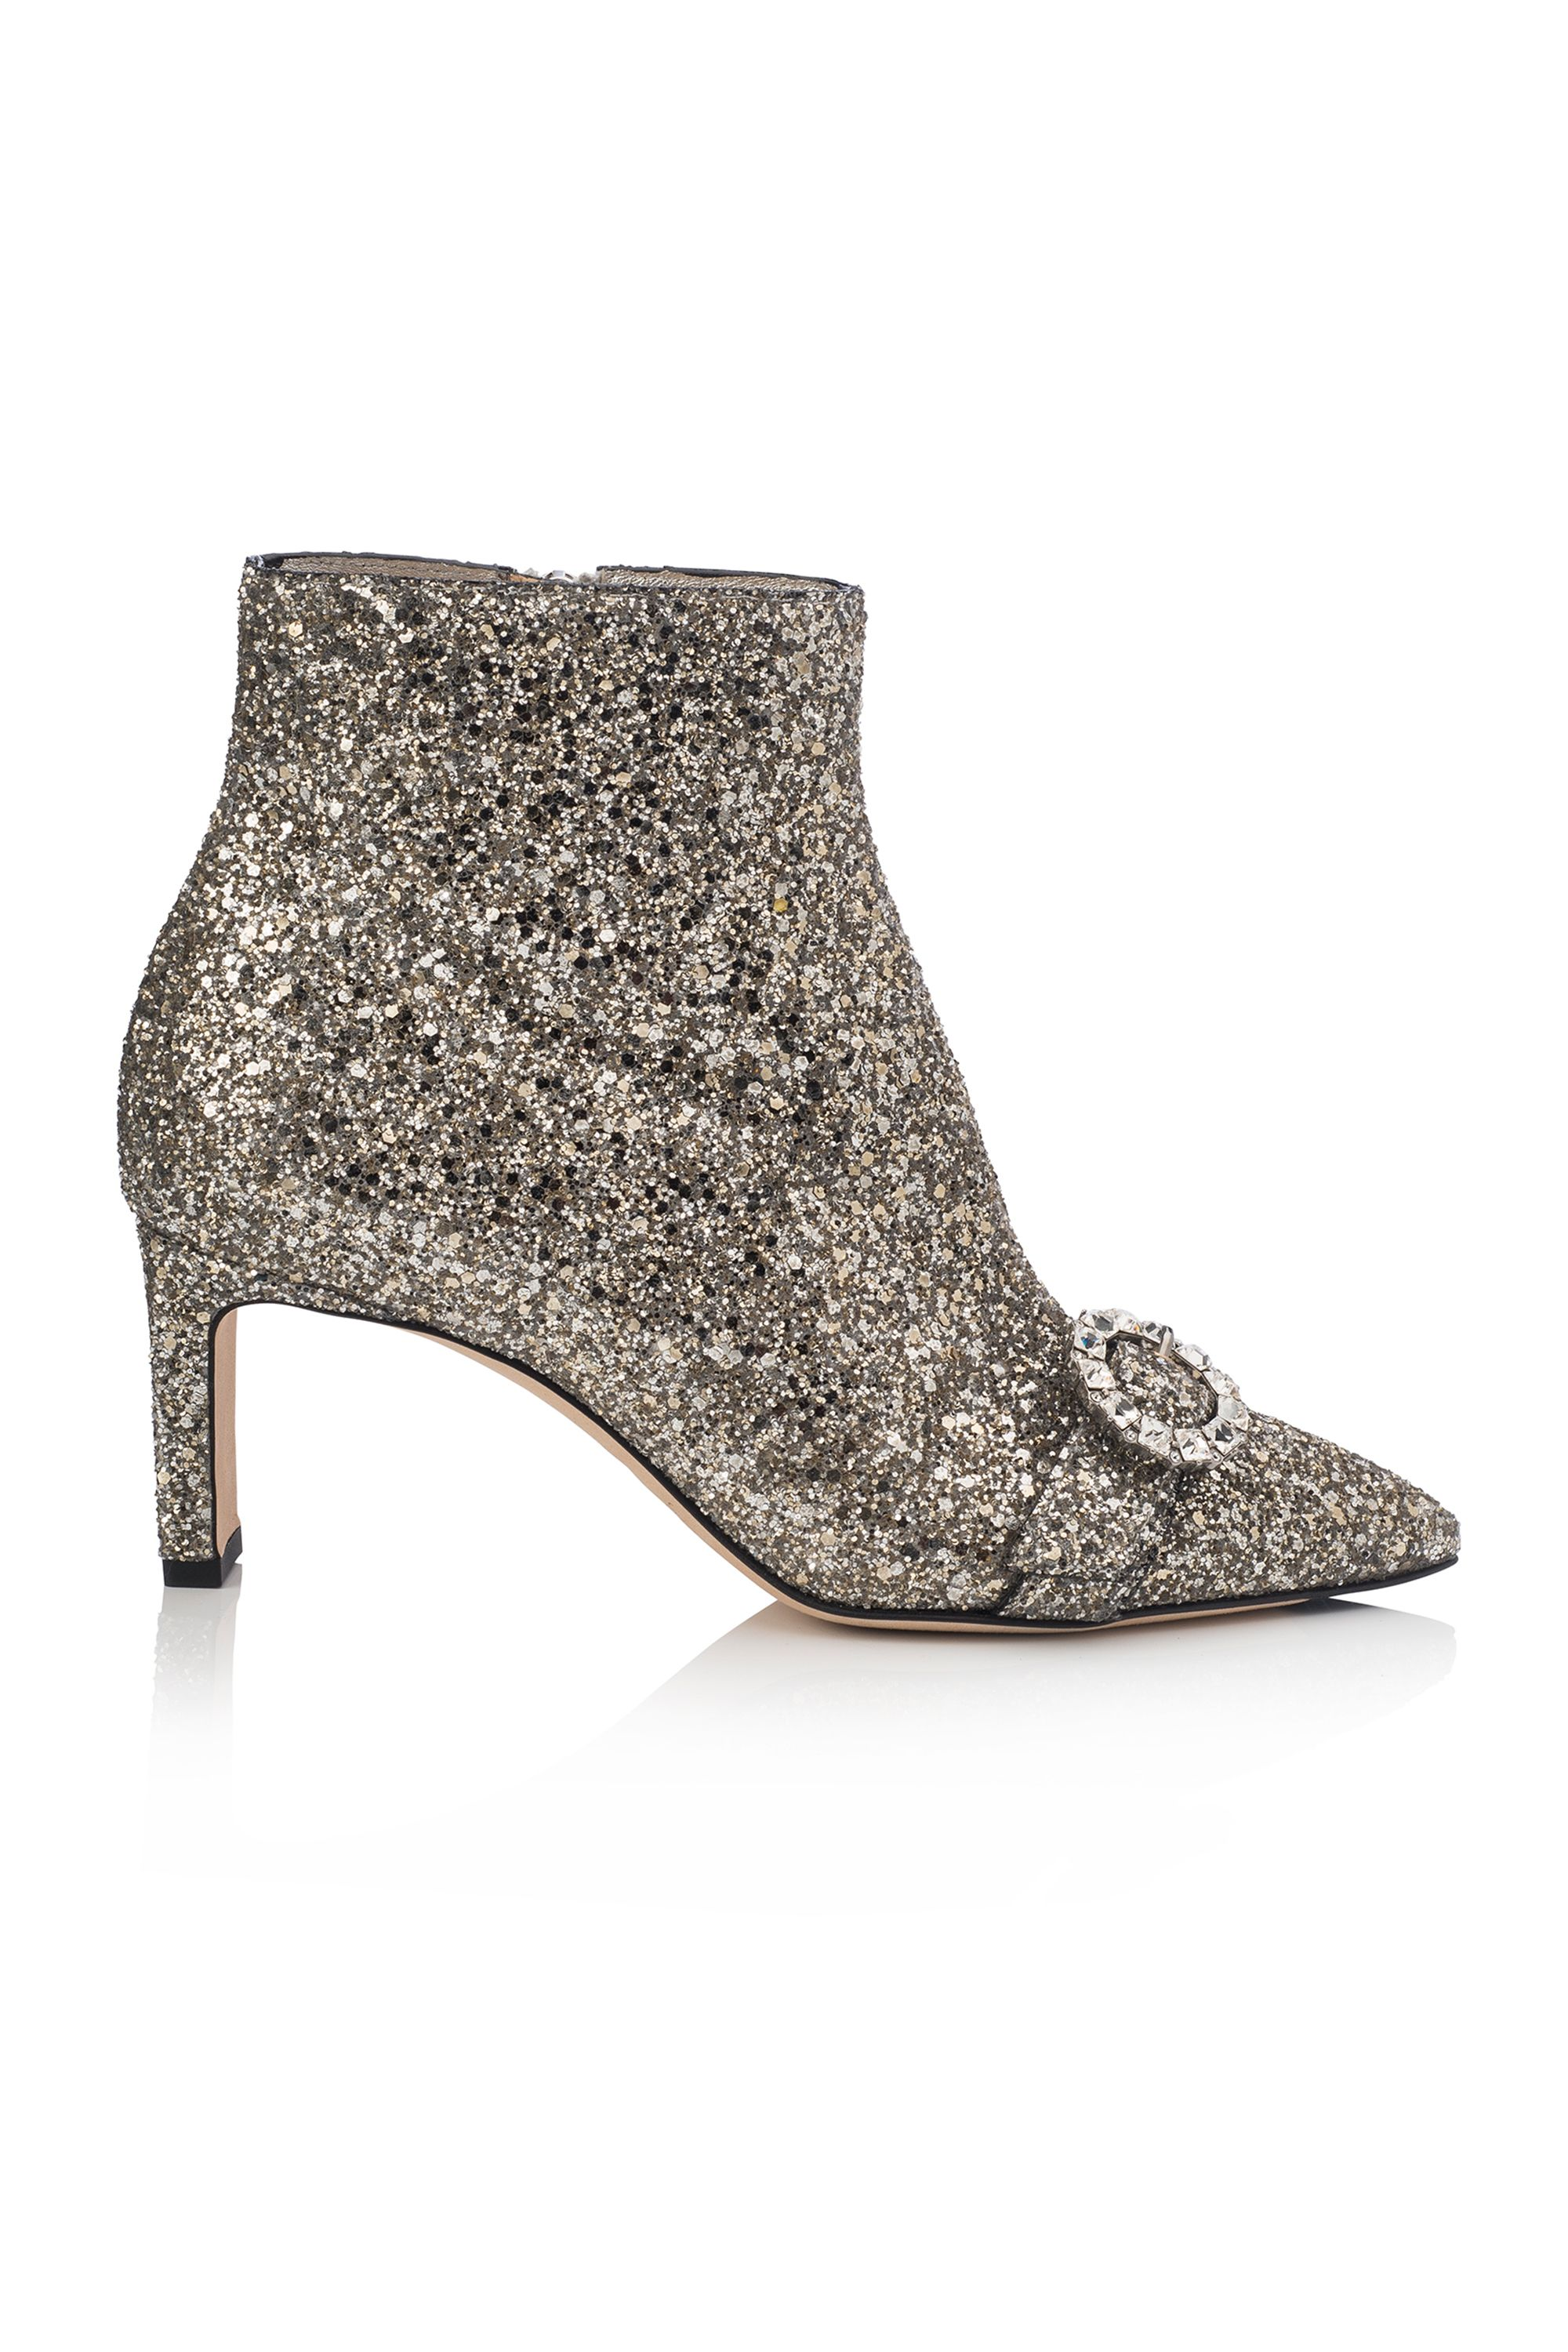 6a88cb537c3 Glitter boots  10 best pairs to party in this season